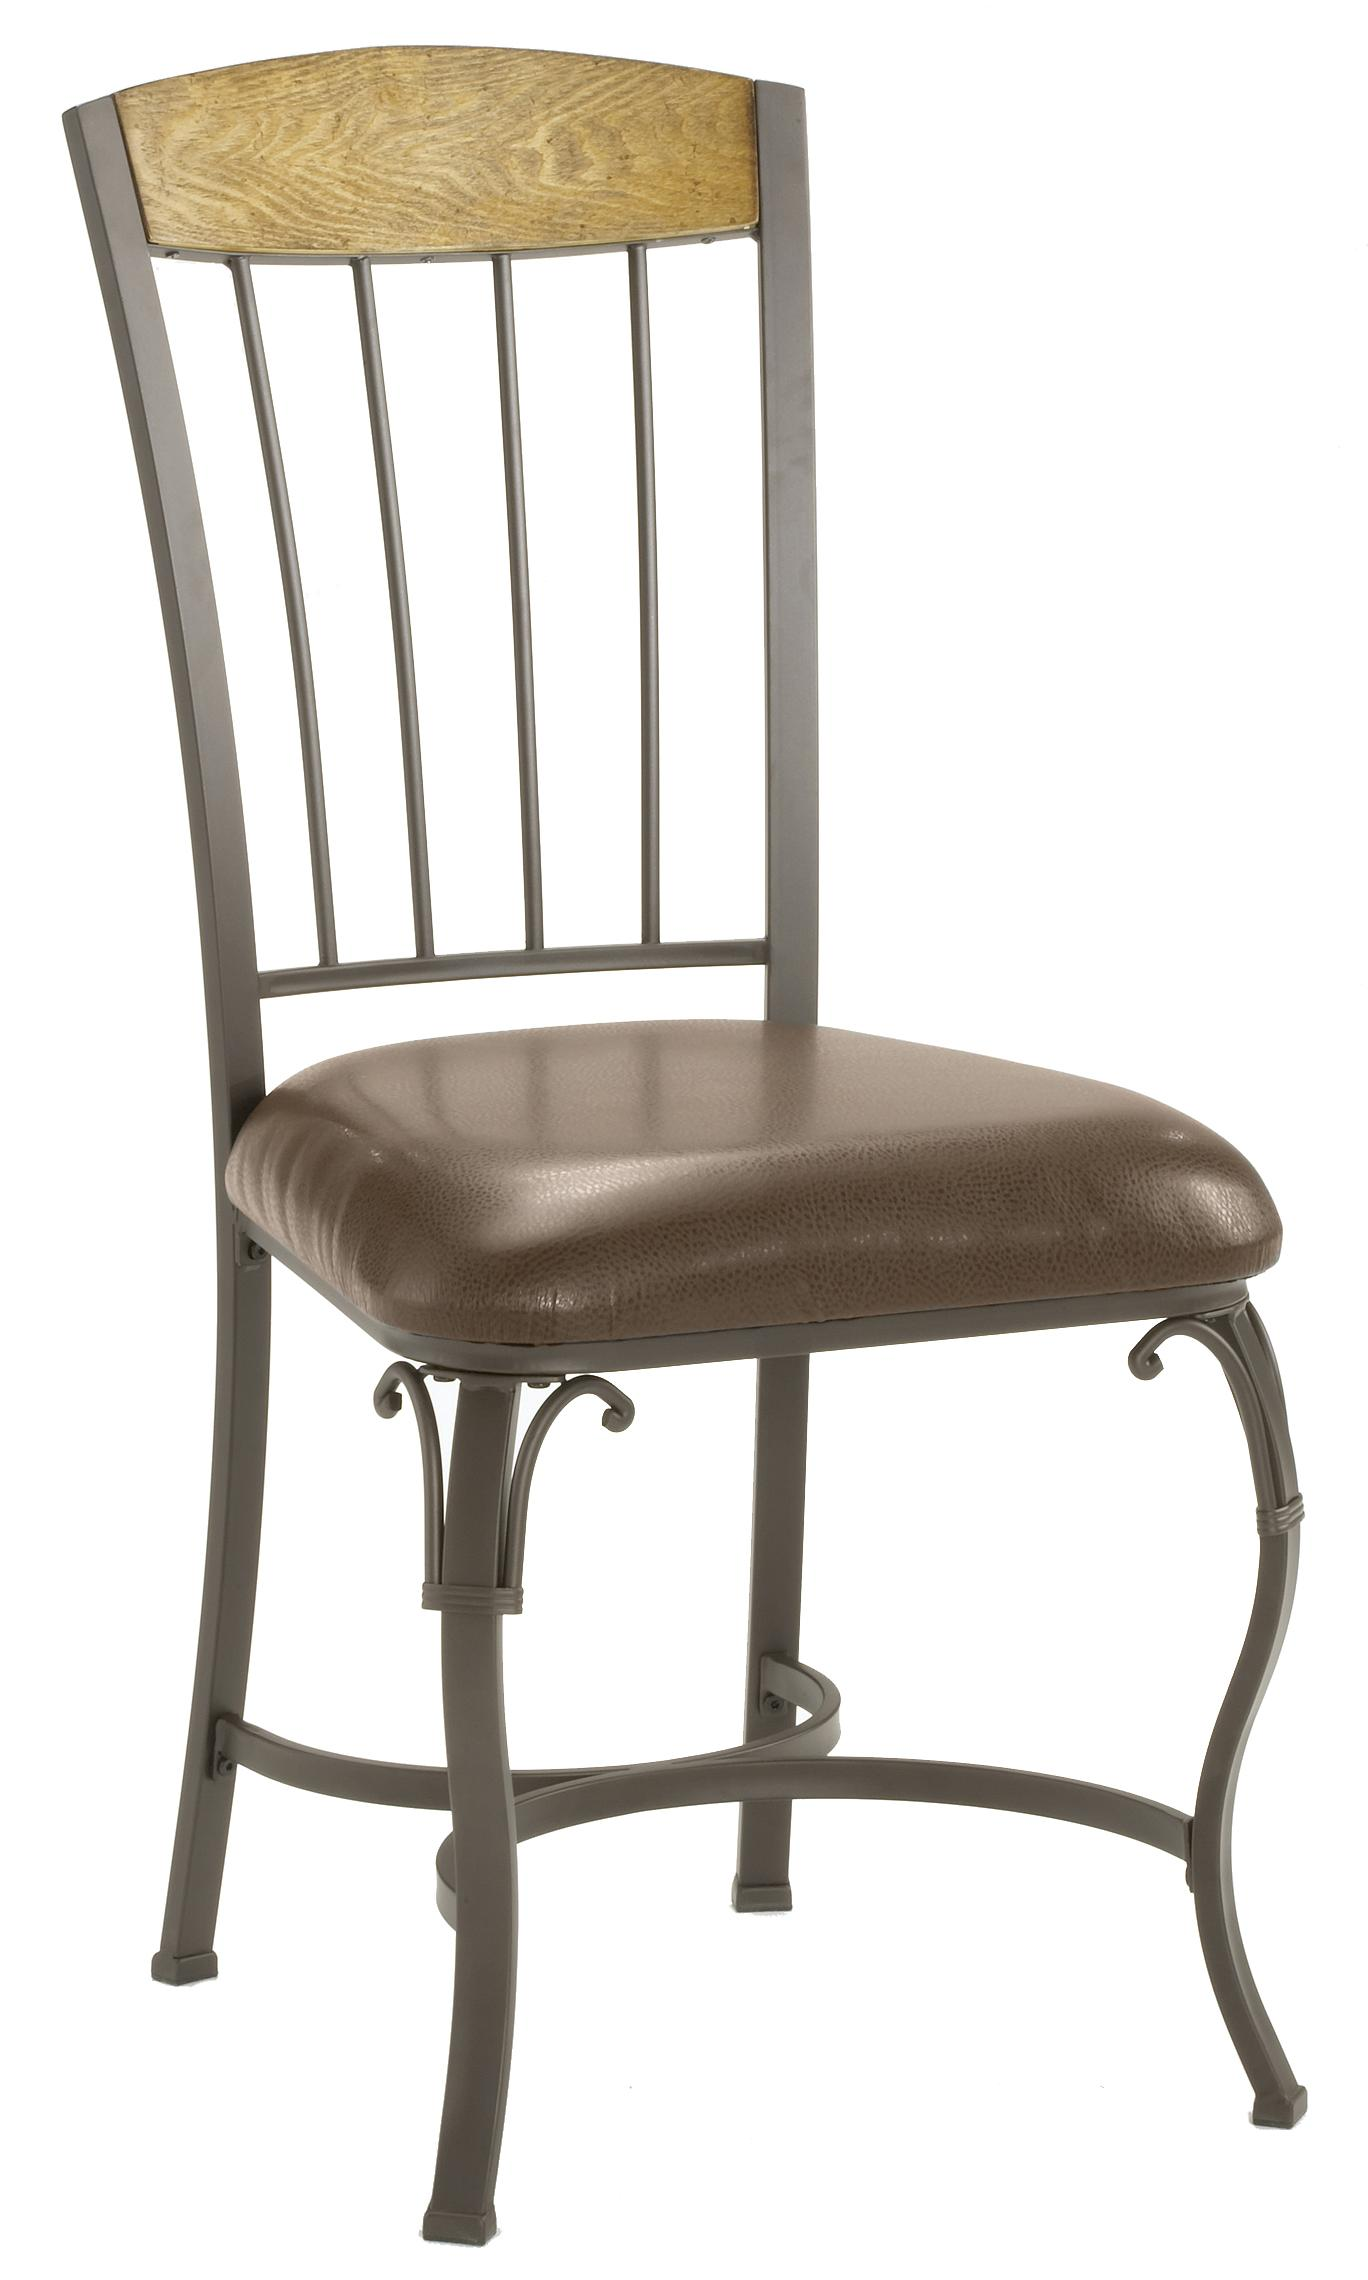 Hillsdale Lakeview Dining Chair with Wood Panel in Top - Item Number: 4264-803